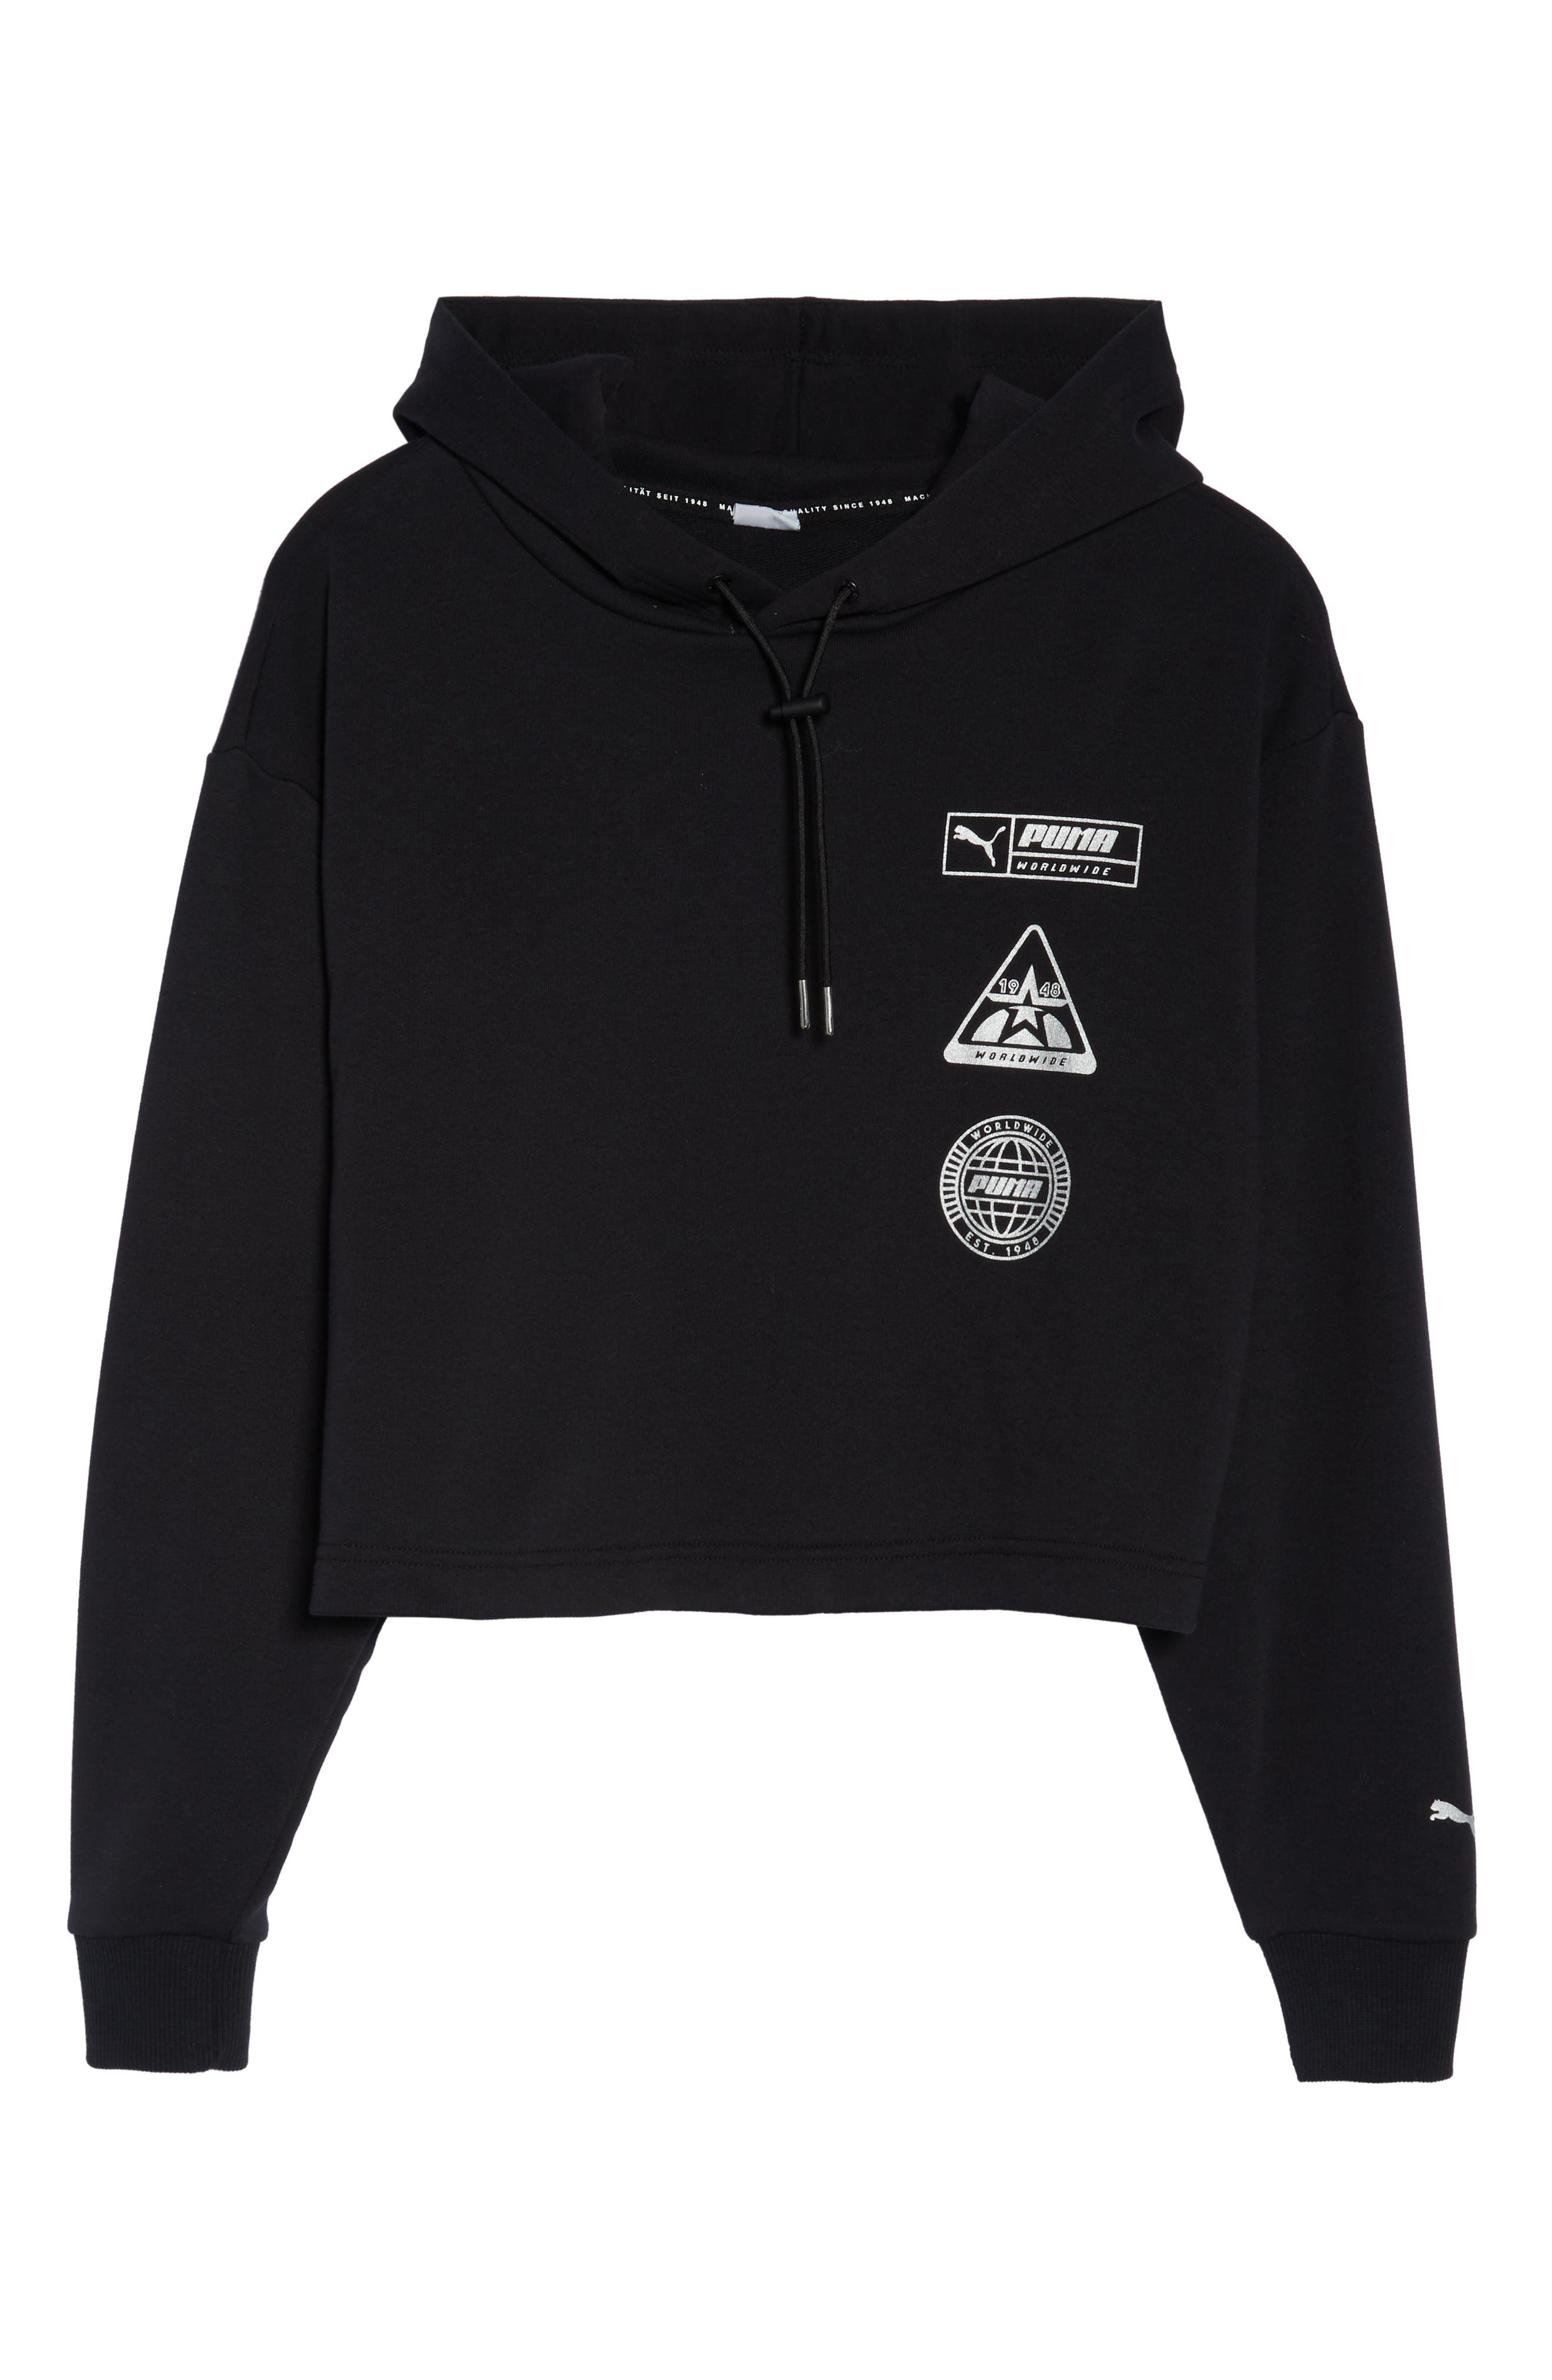 PUMA, TZ Cropped Hoodie, Alternate thumbnail 6, color, BLACK